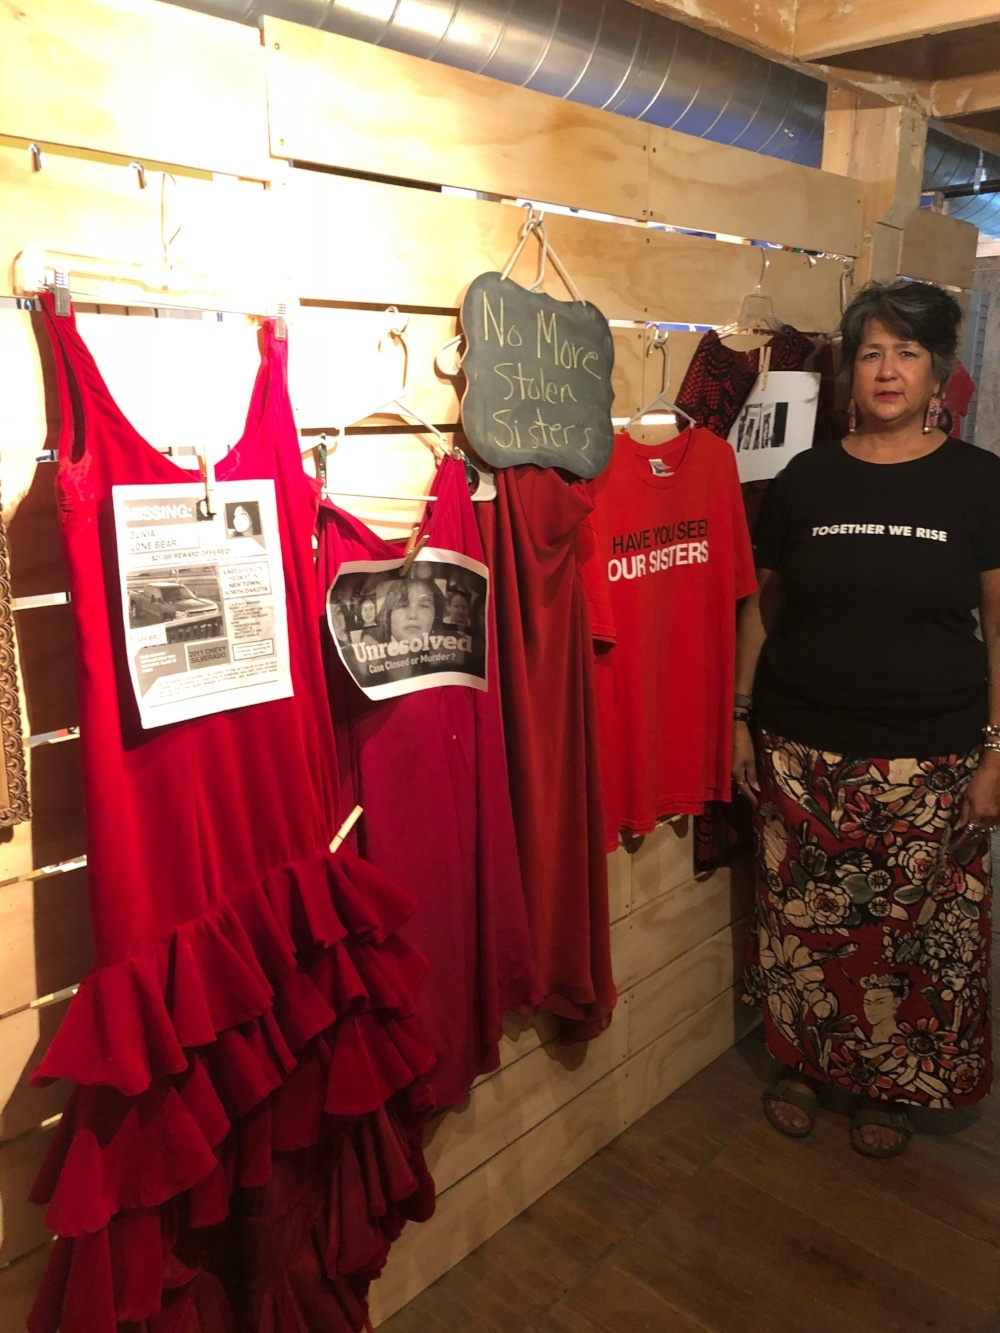 red-skirt-society-dignity-event-blog